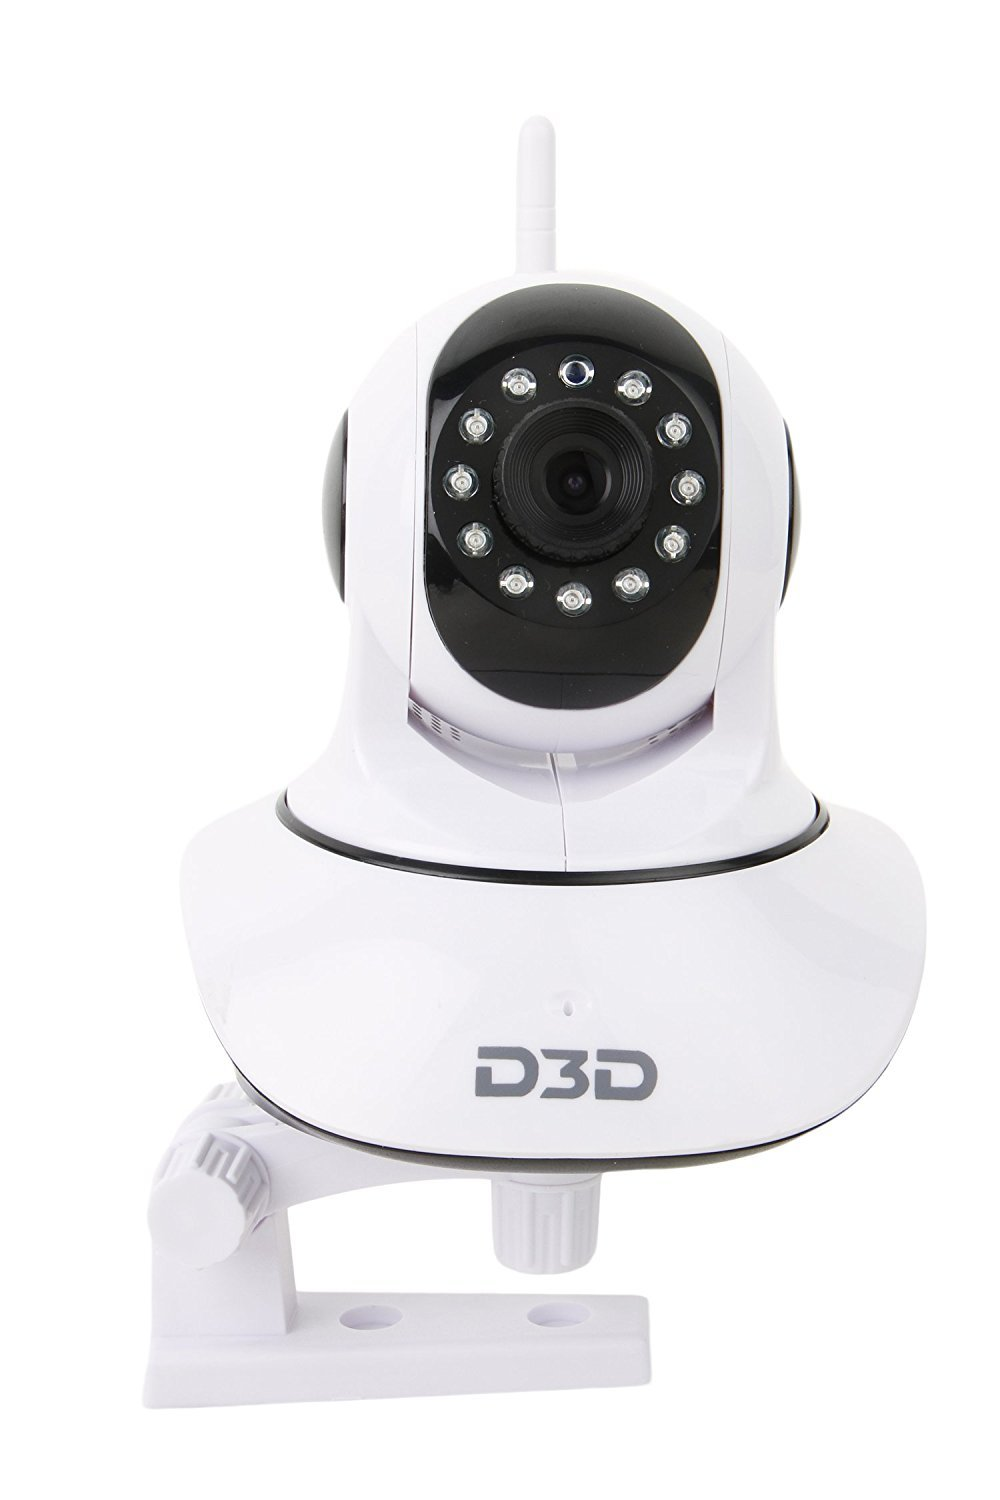 D3D D8810 HD WiFi CCTV Indoor (White)